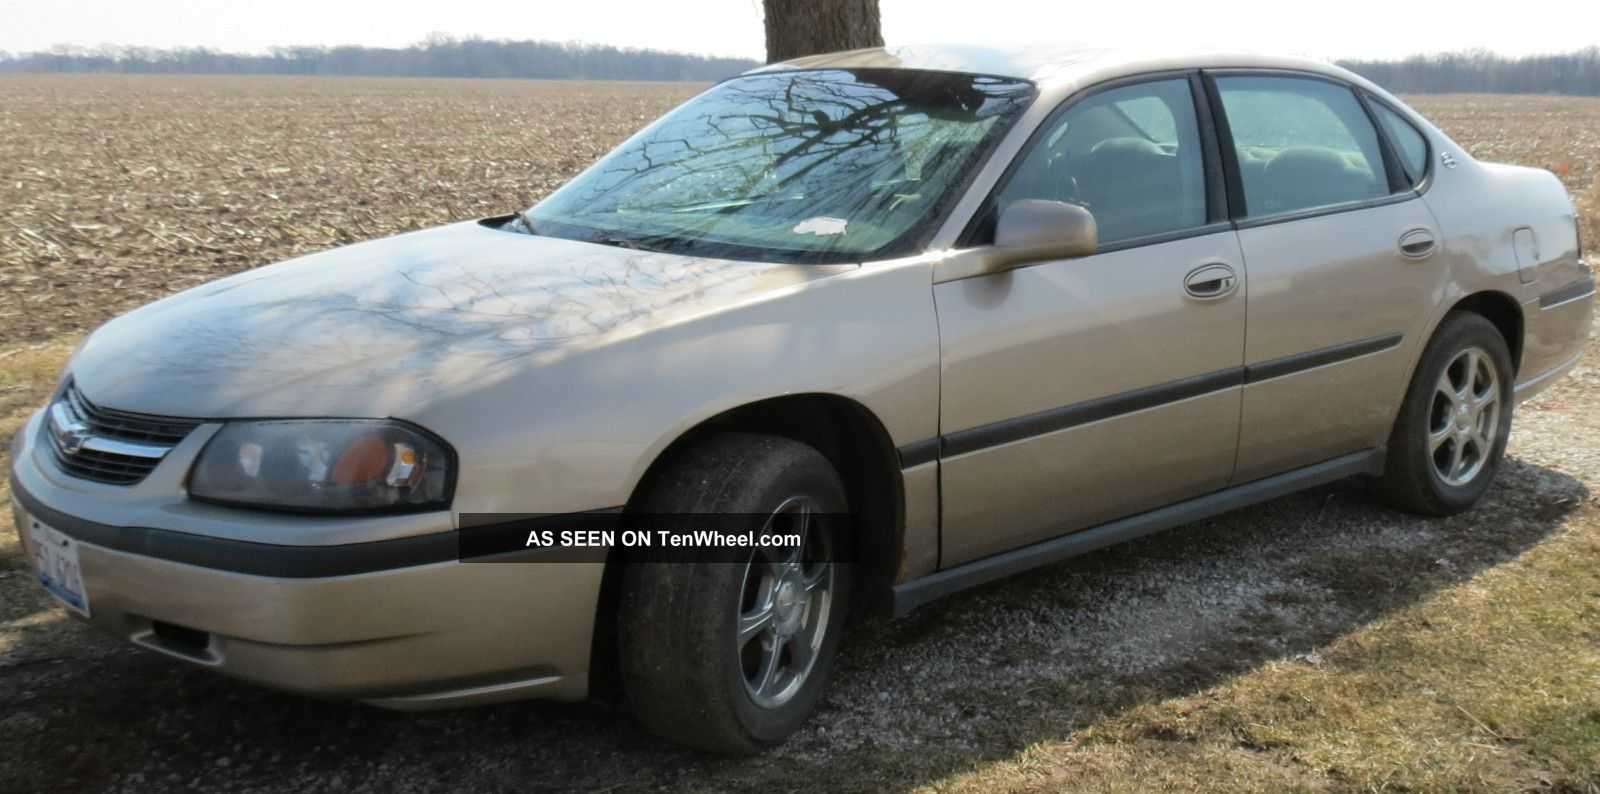 2002 chevy impala alloy wheels good beater car work car. Cars Review. Best American Auto & Cars Review